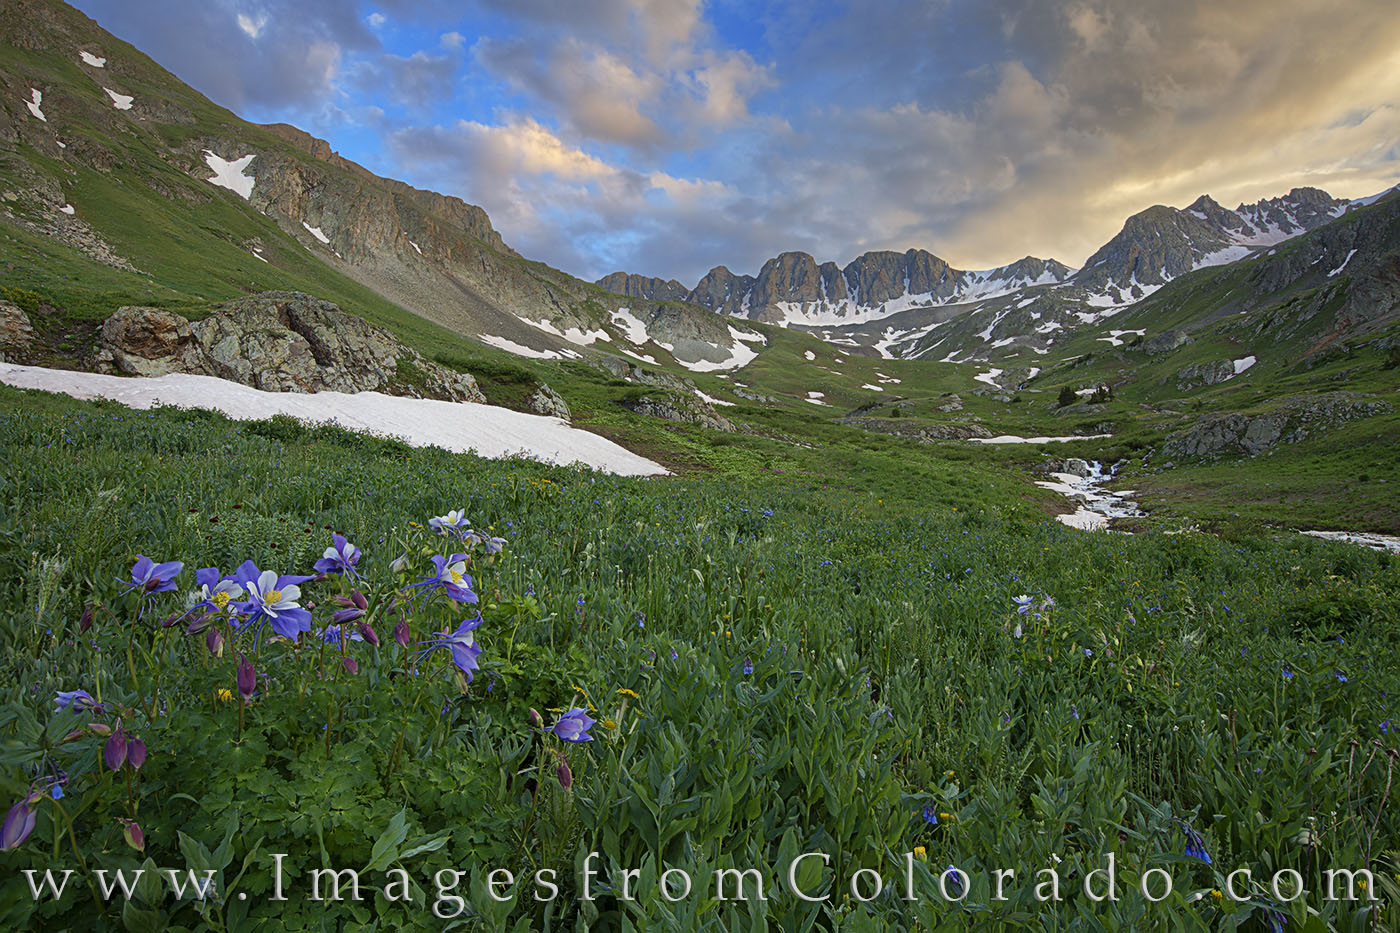 columbine, san juan mountains, lake city, american basin, wildflowers, handies peak, rocky mountains, blue flowers, photo